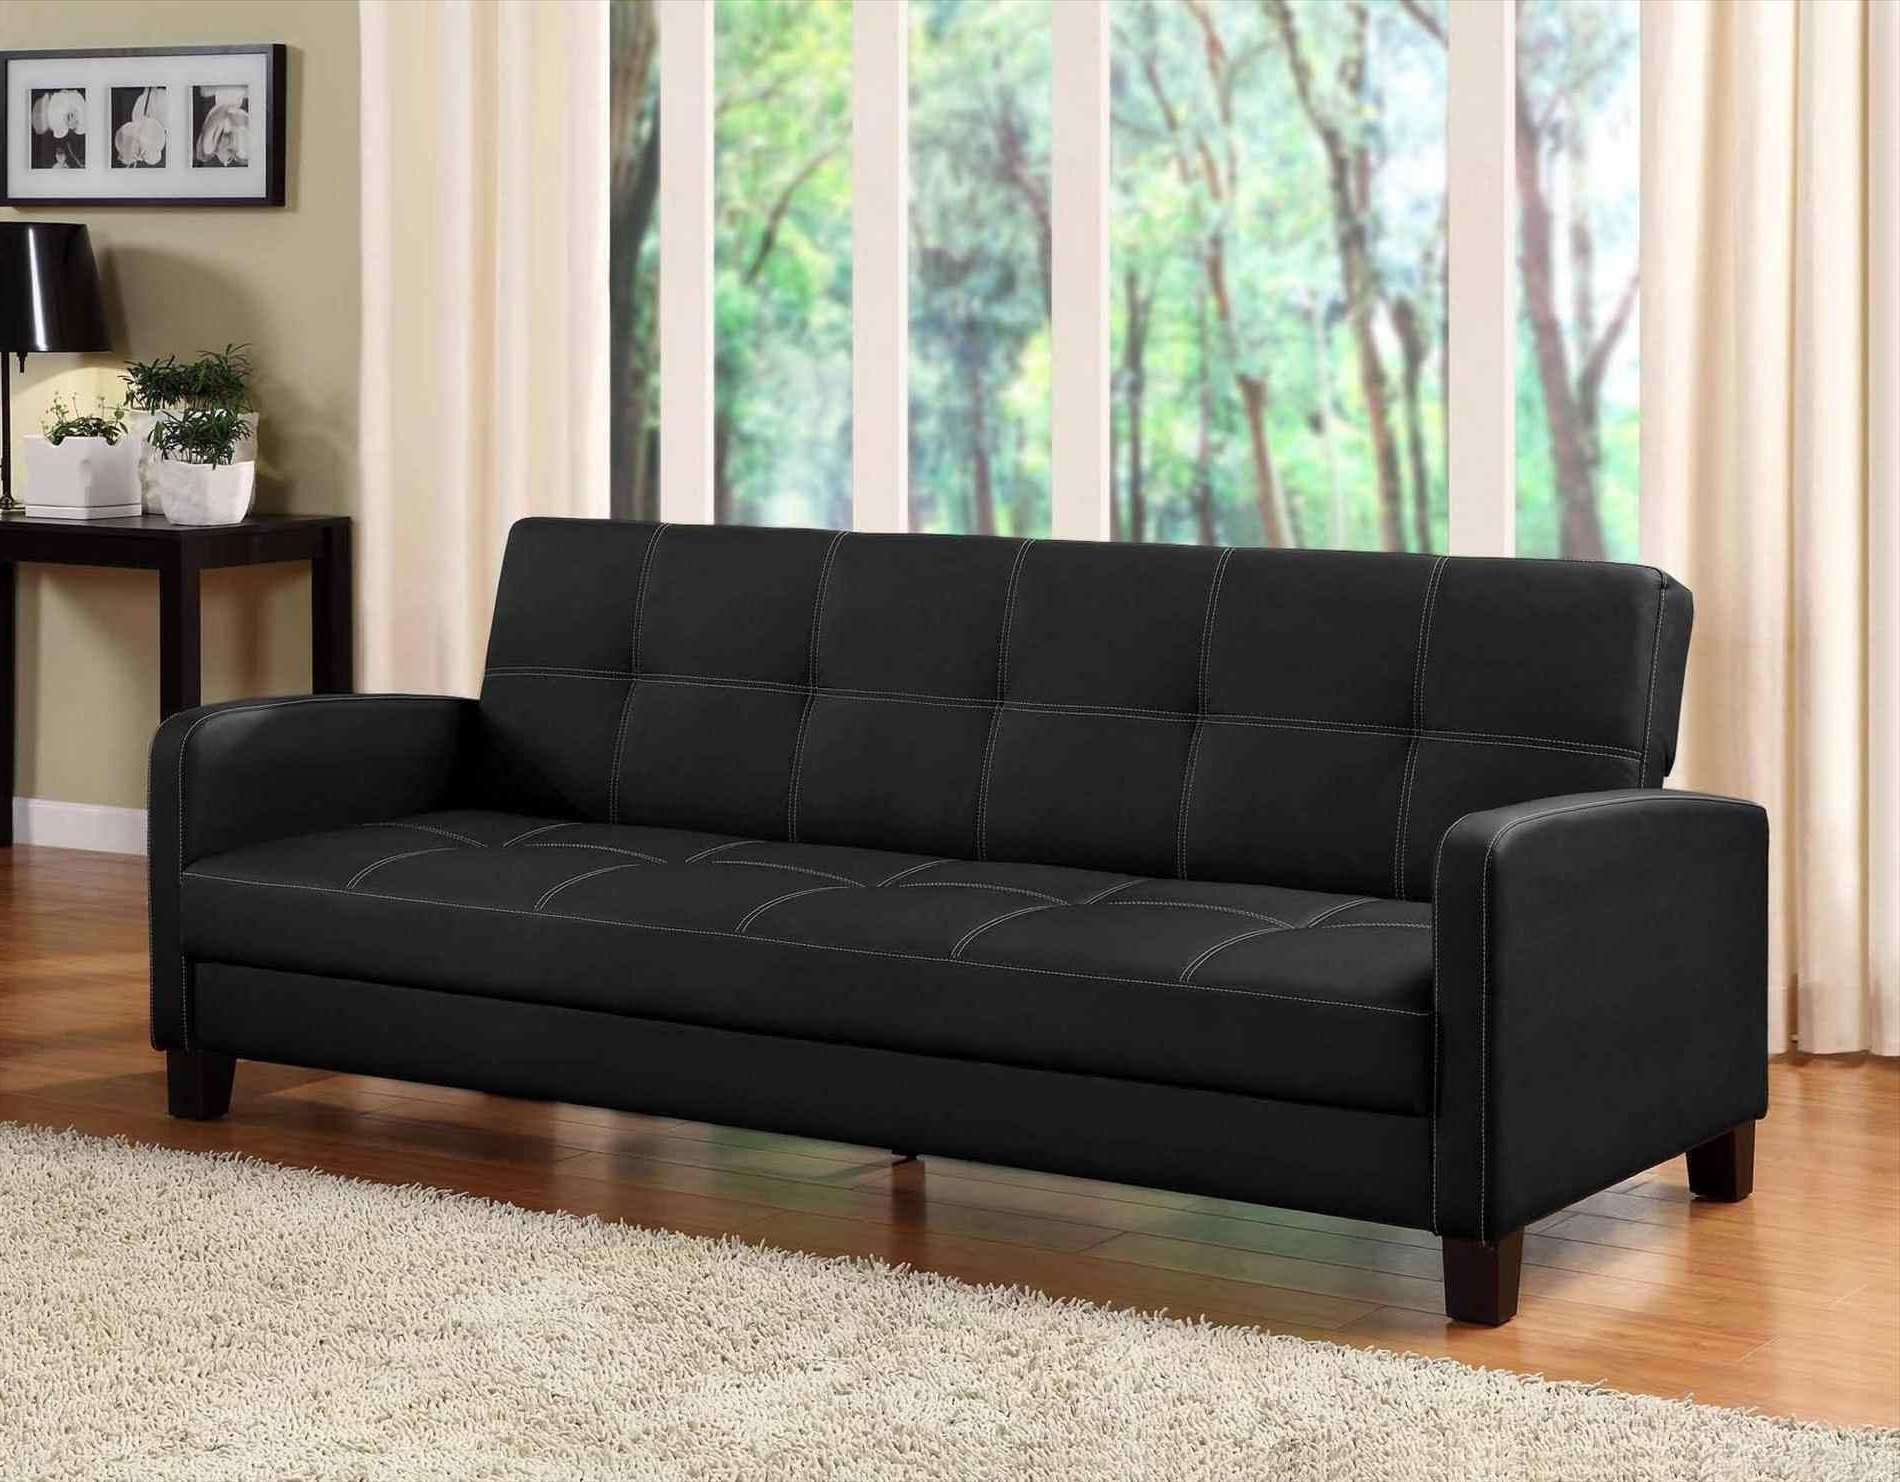 Sofa : Palmdino Com Sheets Amusing For Decor Terrific Kmart With Regarding Trendy Kmart Sectional Sofas (View 15 of 15)